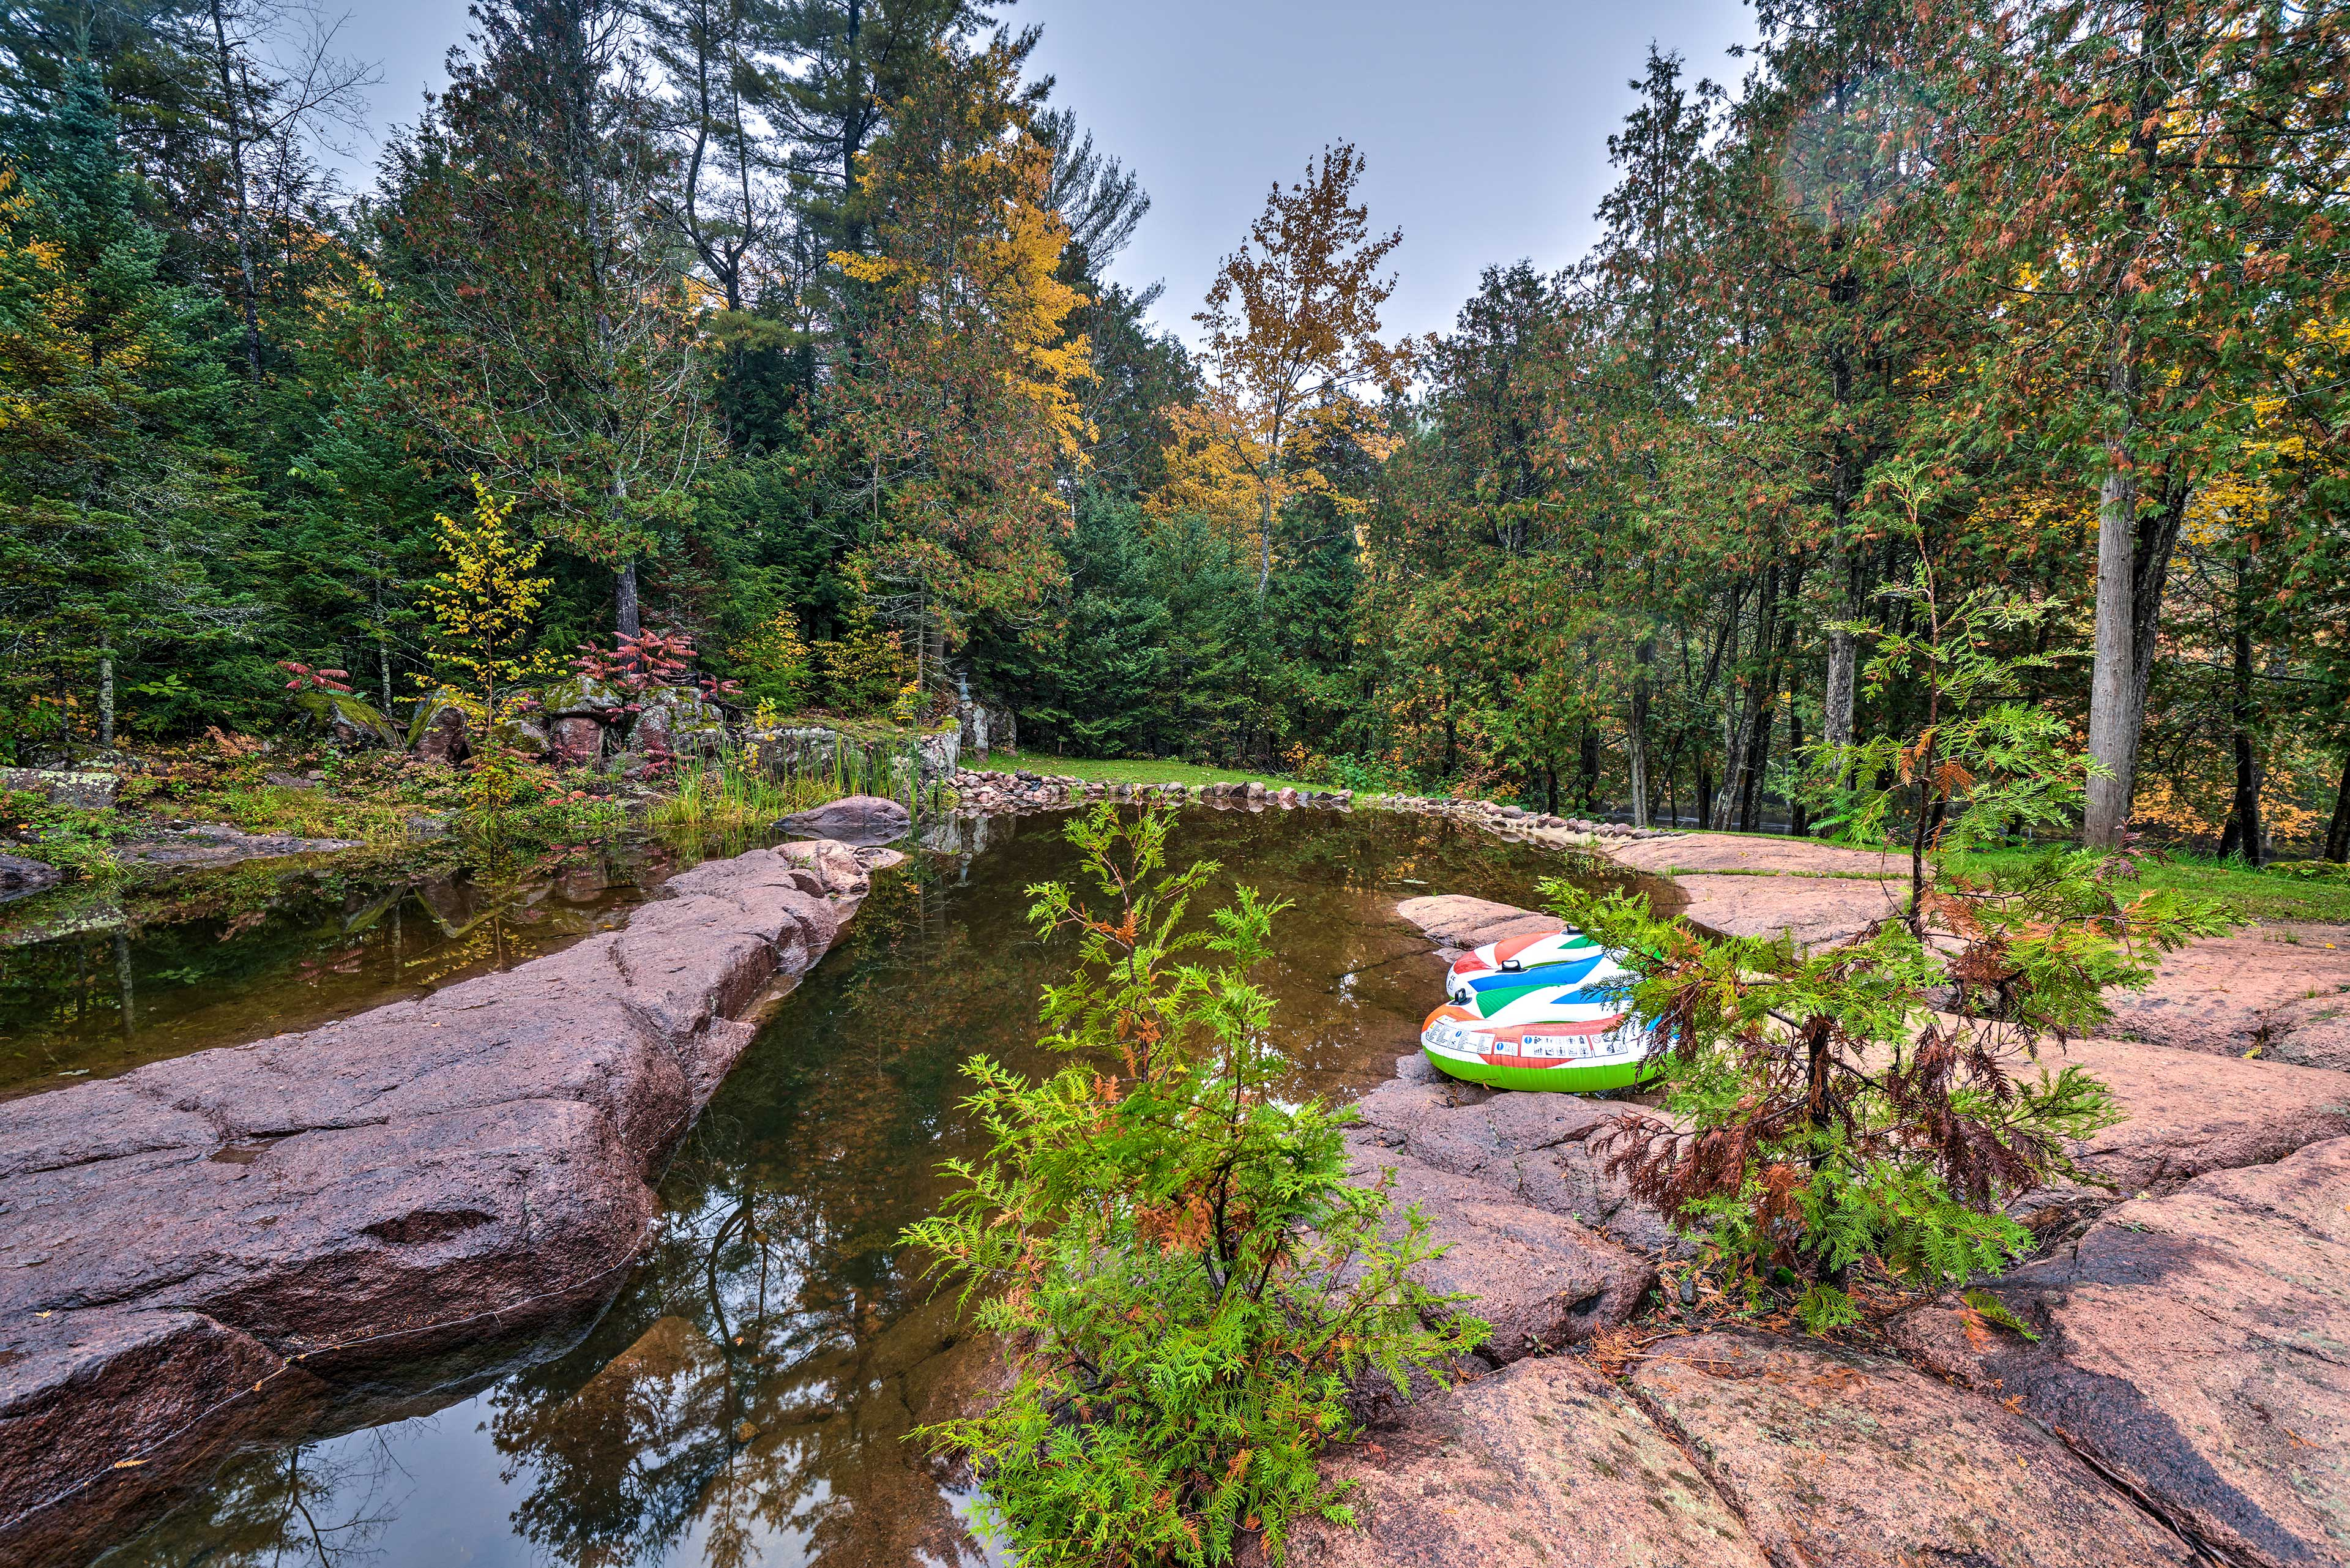 Kids will love playing in this babbling brook!